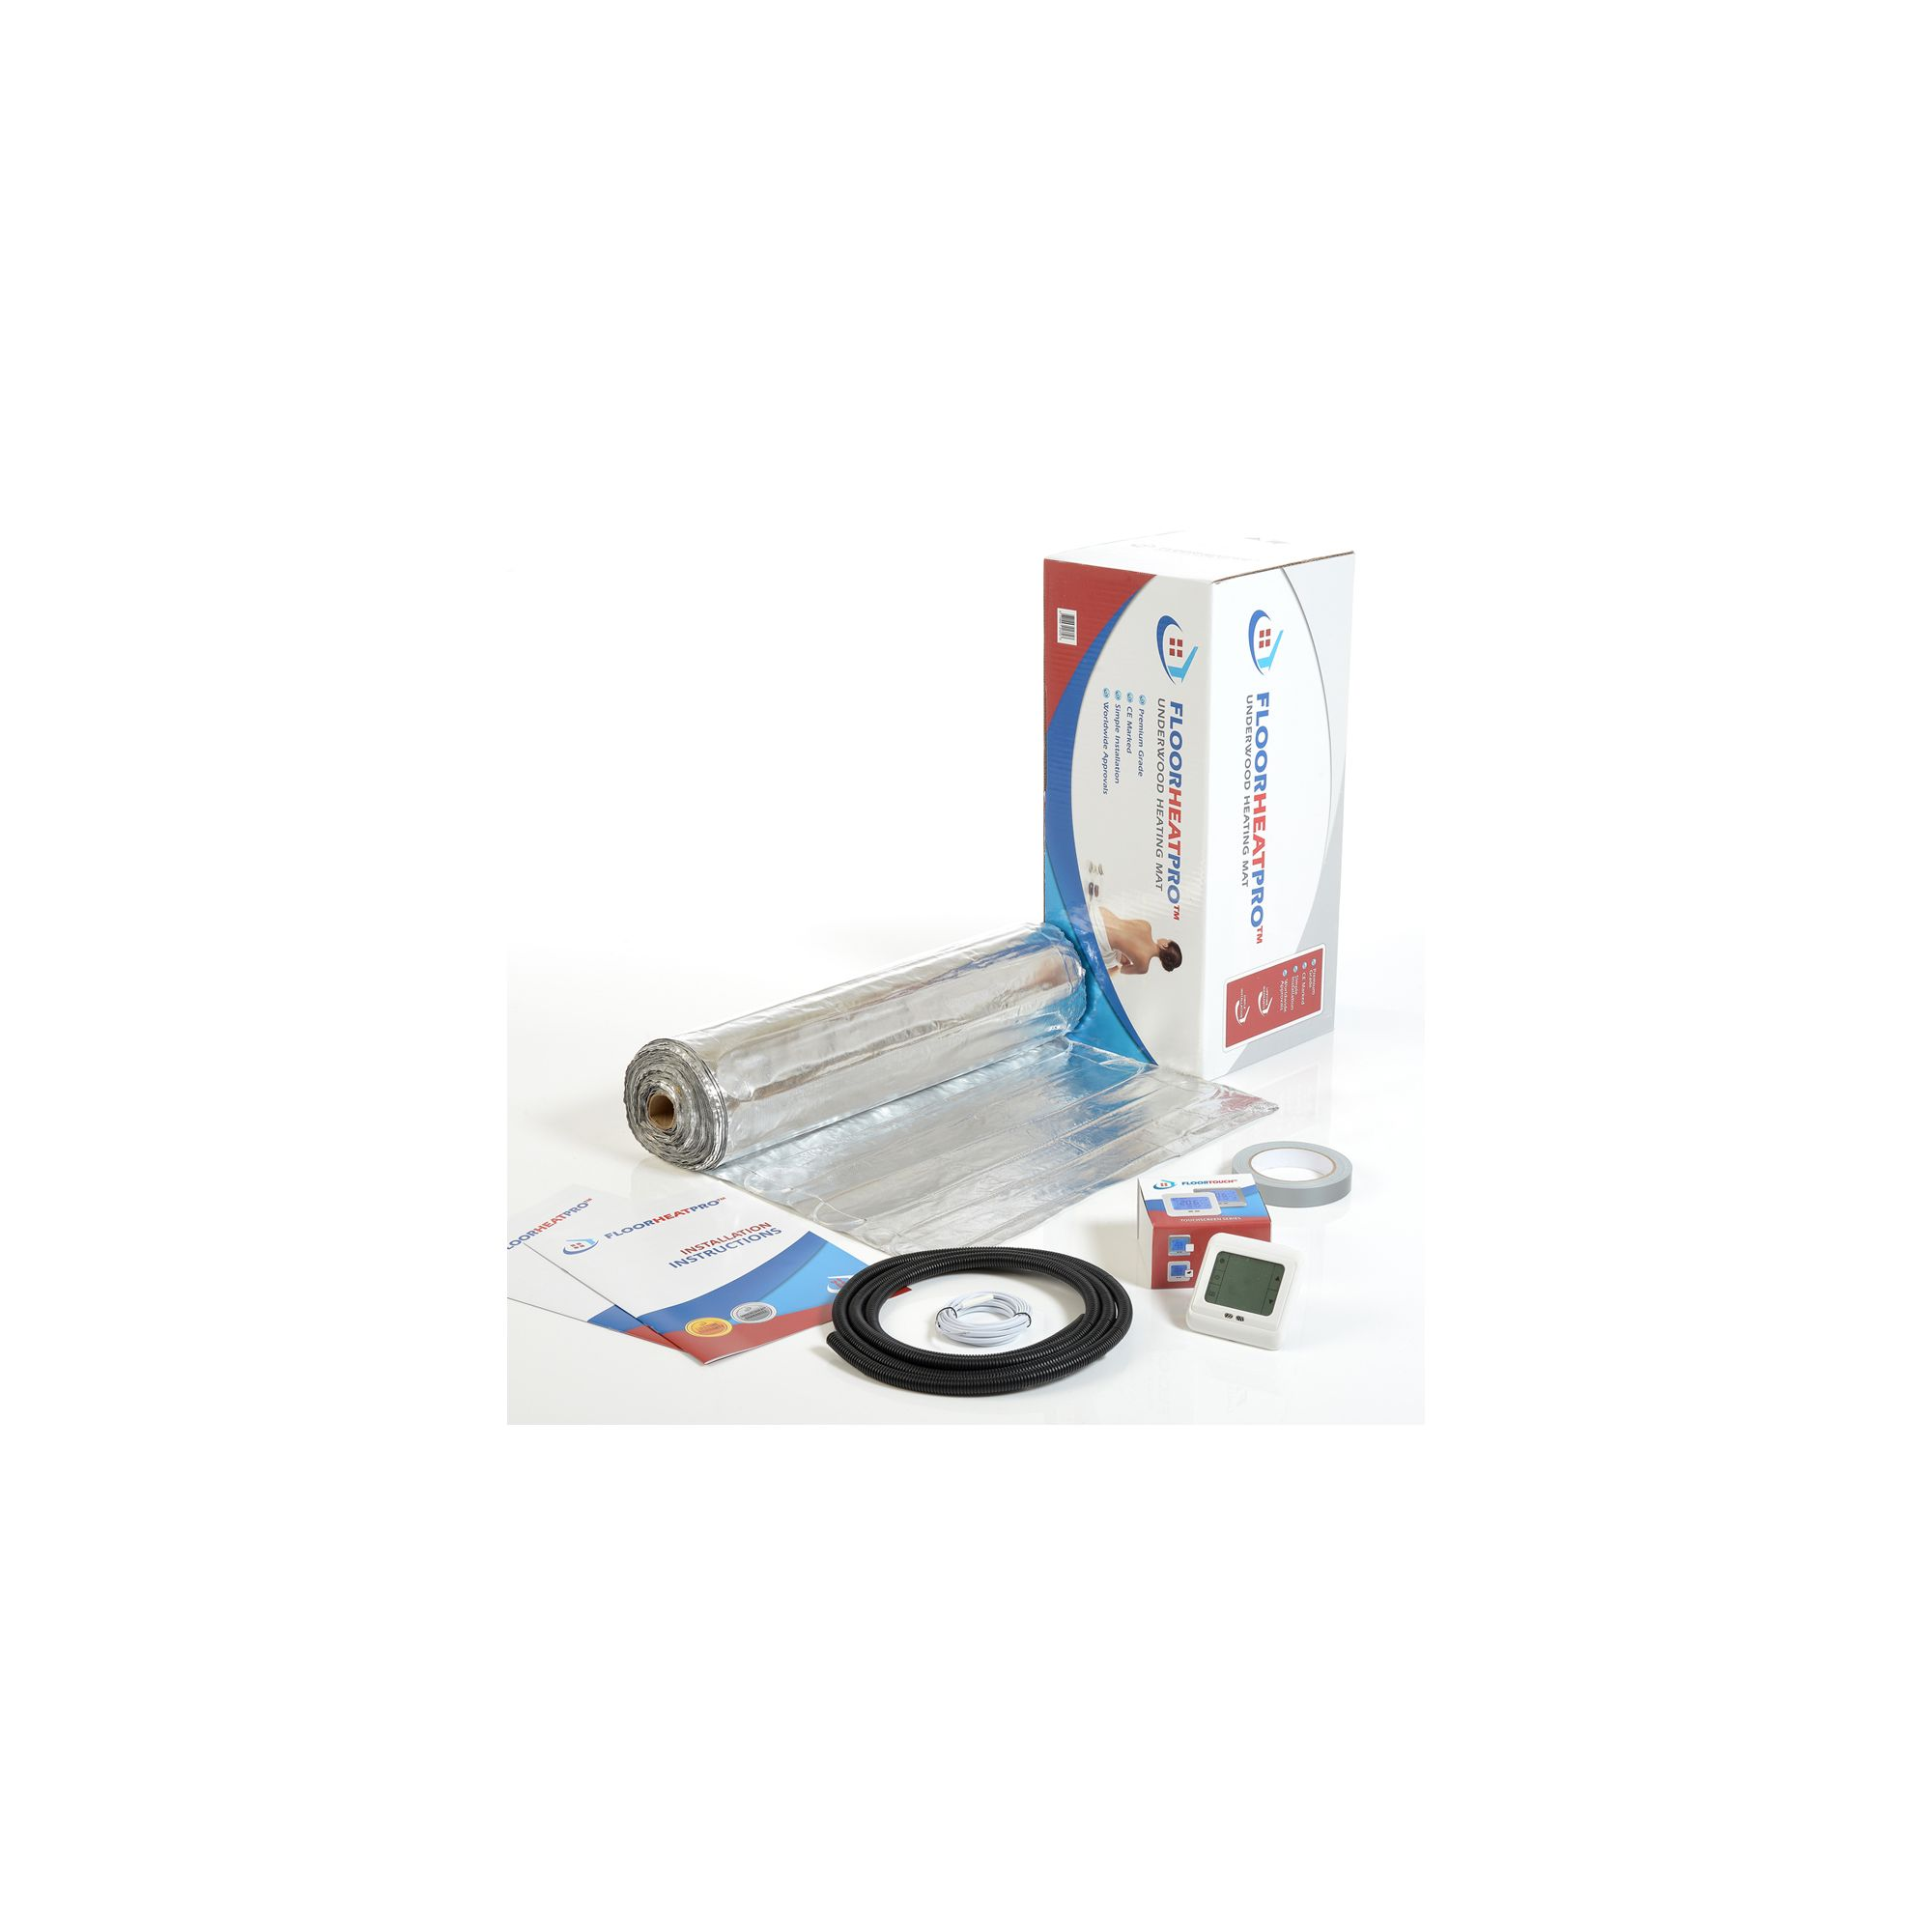 22.0 m2 - Underfloor Electric Heating Kit - Laminate at Tescos Direct